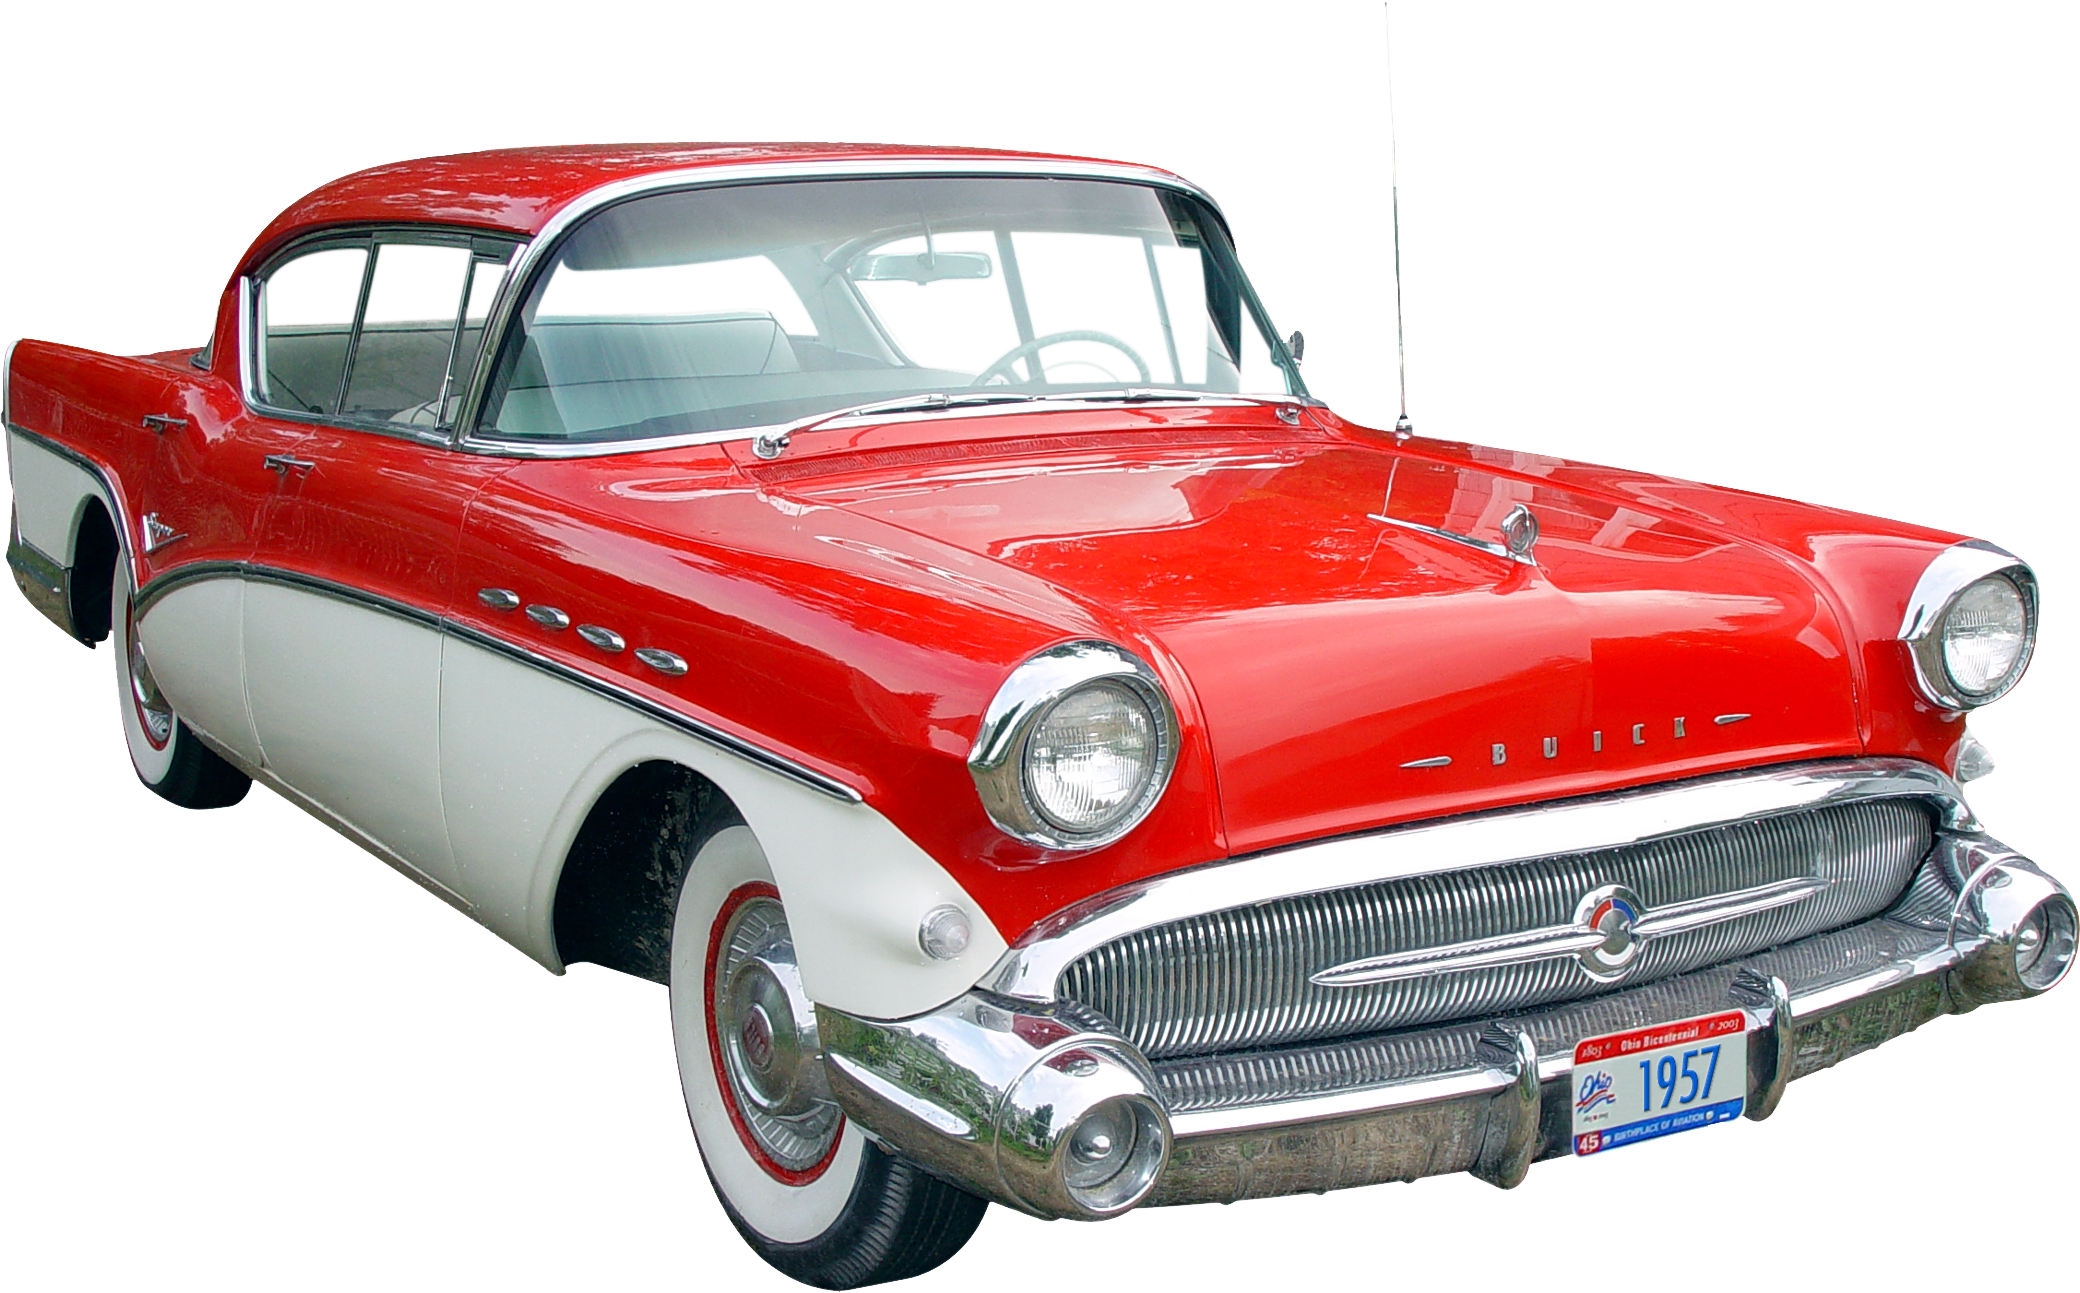 Classic Car PNG Images Transparent Free Download.